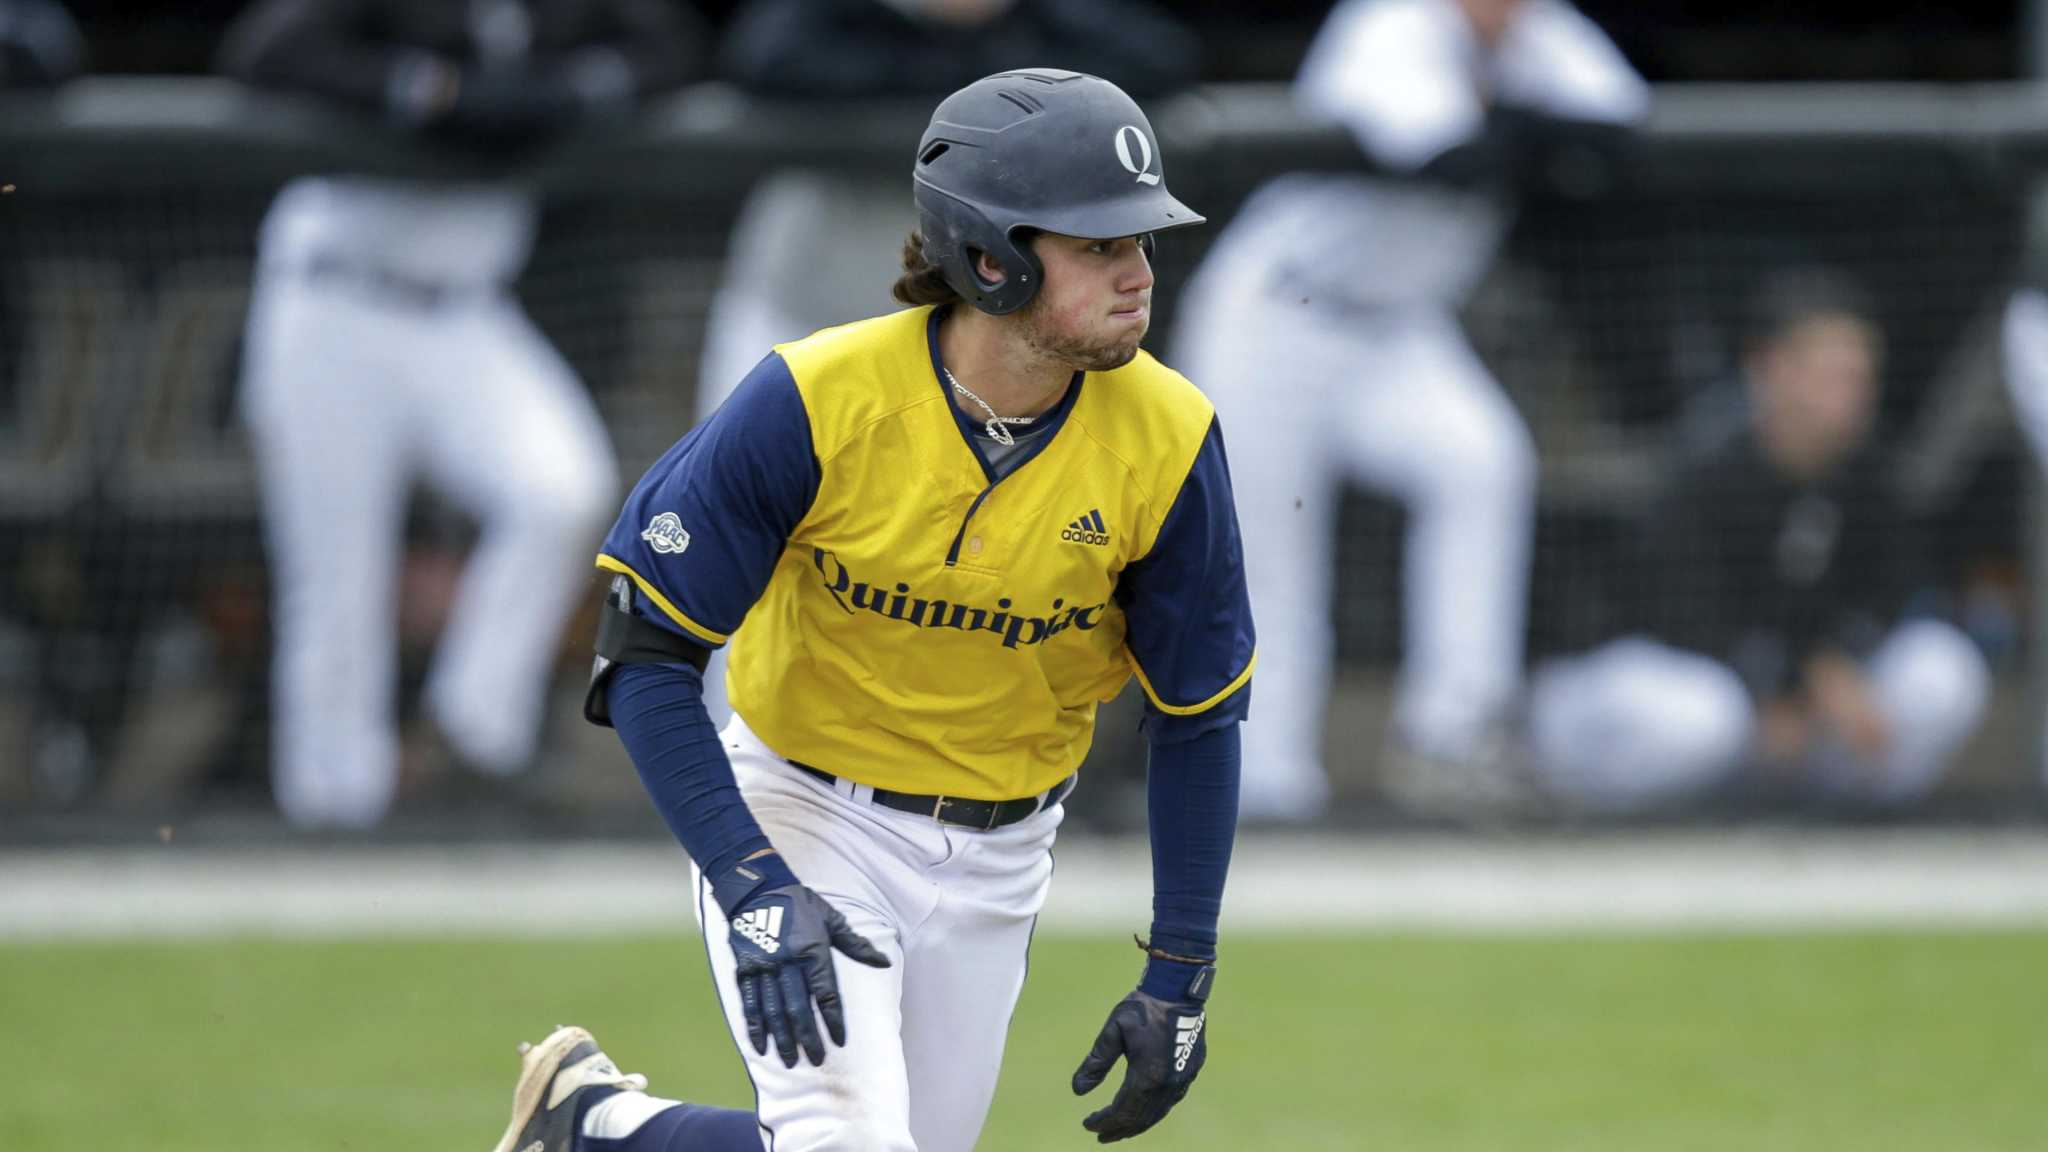 College Notebook: Conference baseball races to be decided this weekend